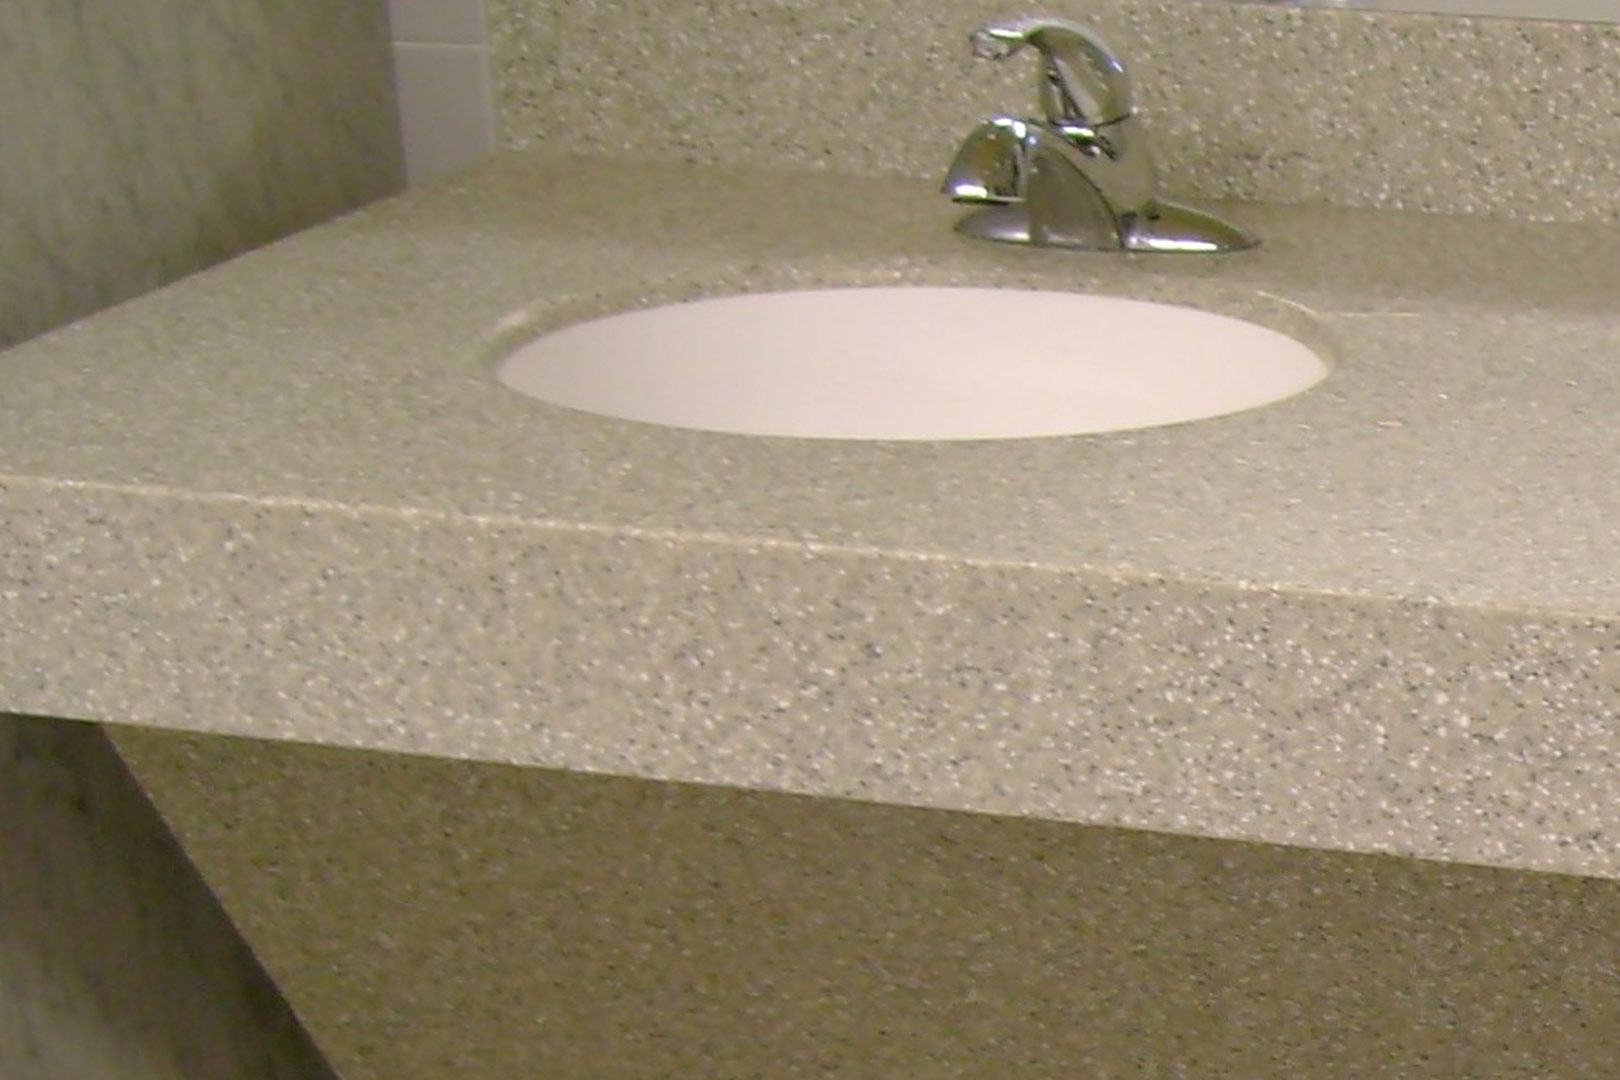 Basix Countertops Solid Surfaces Gallery Providing Quality At An